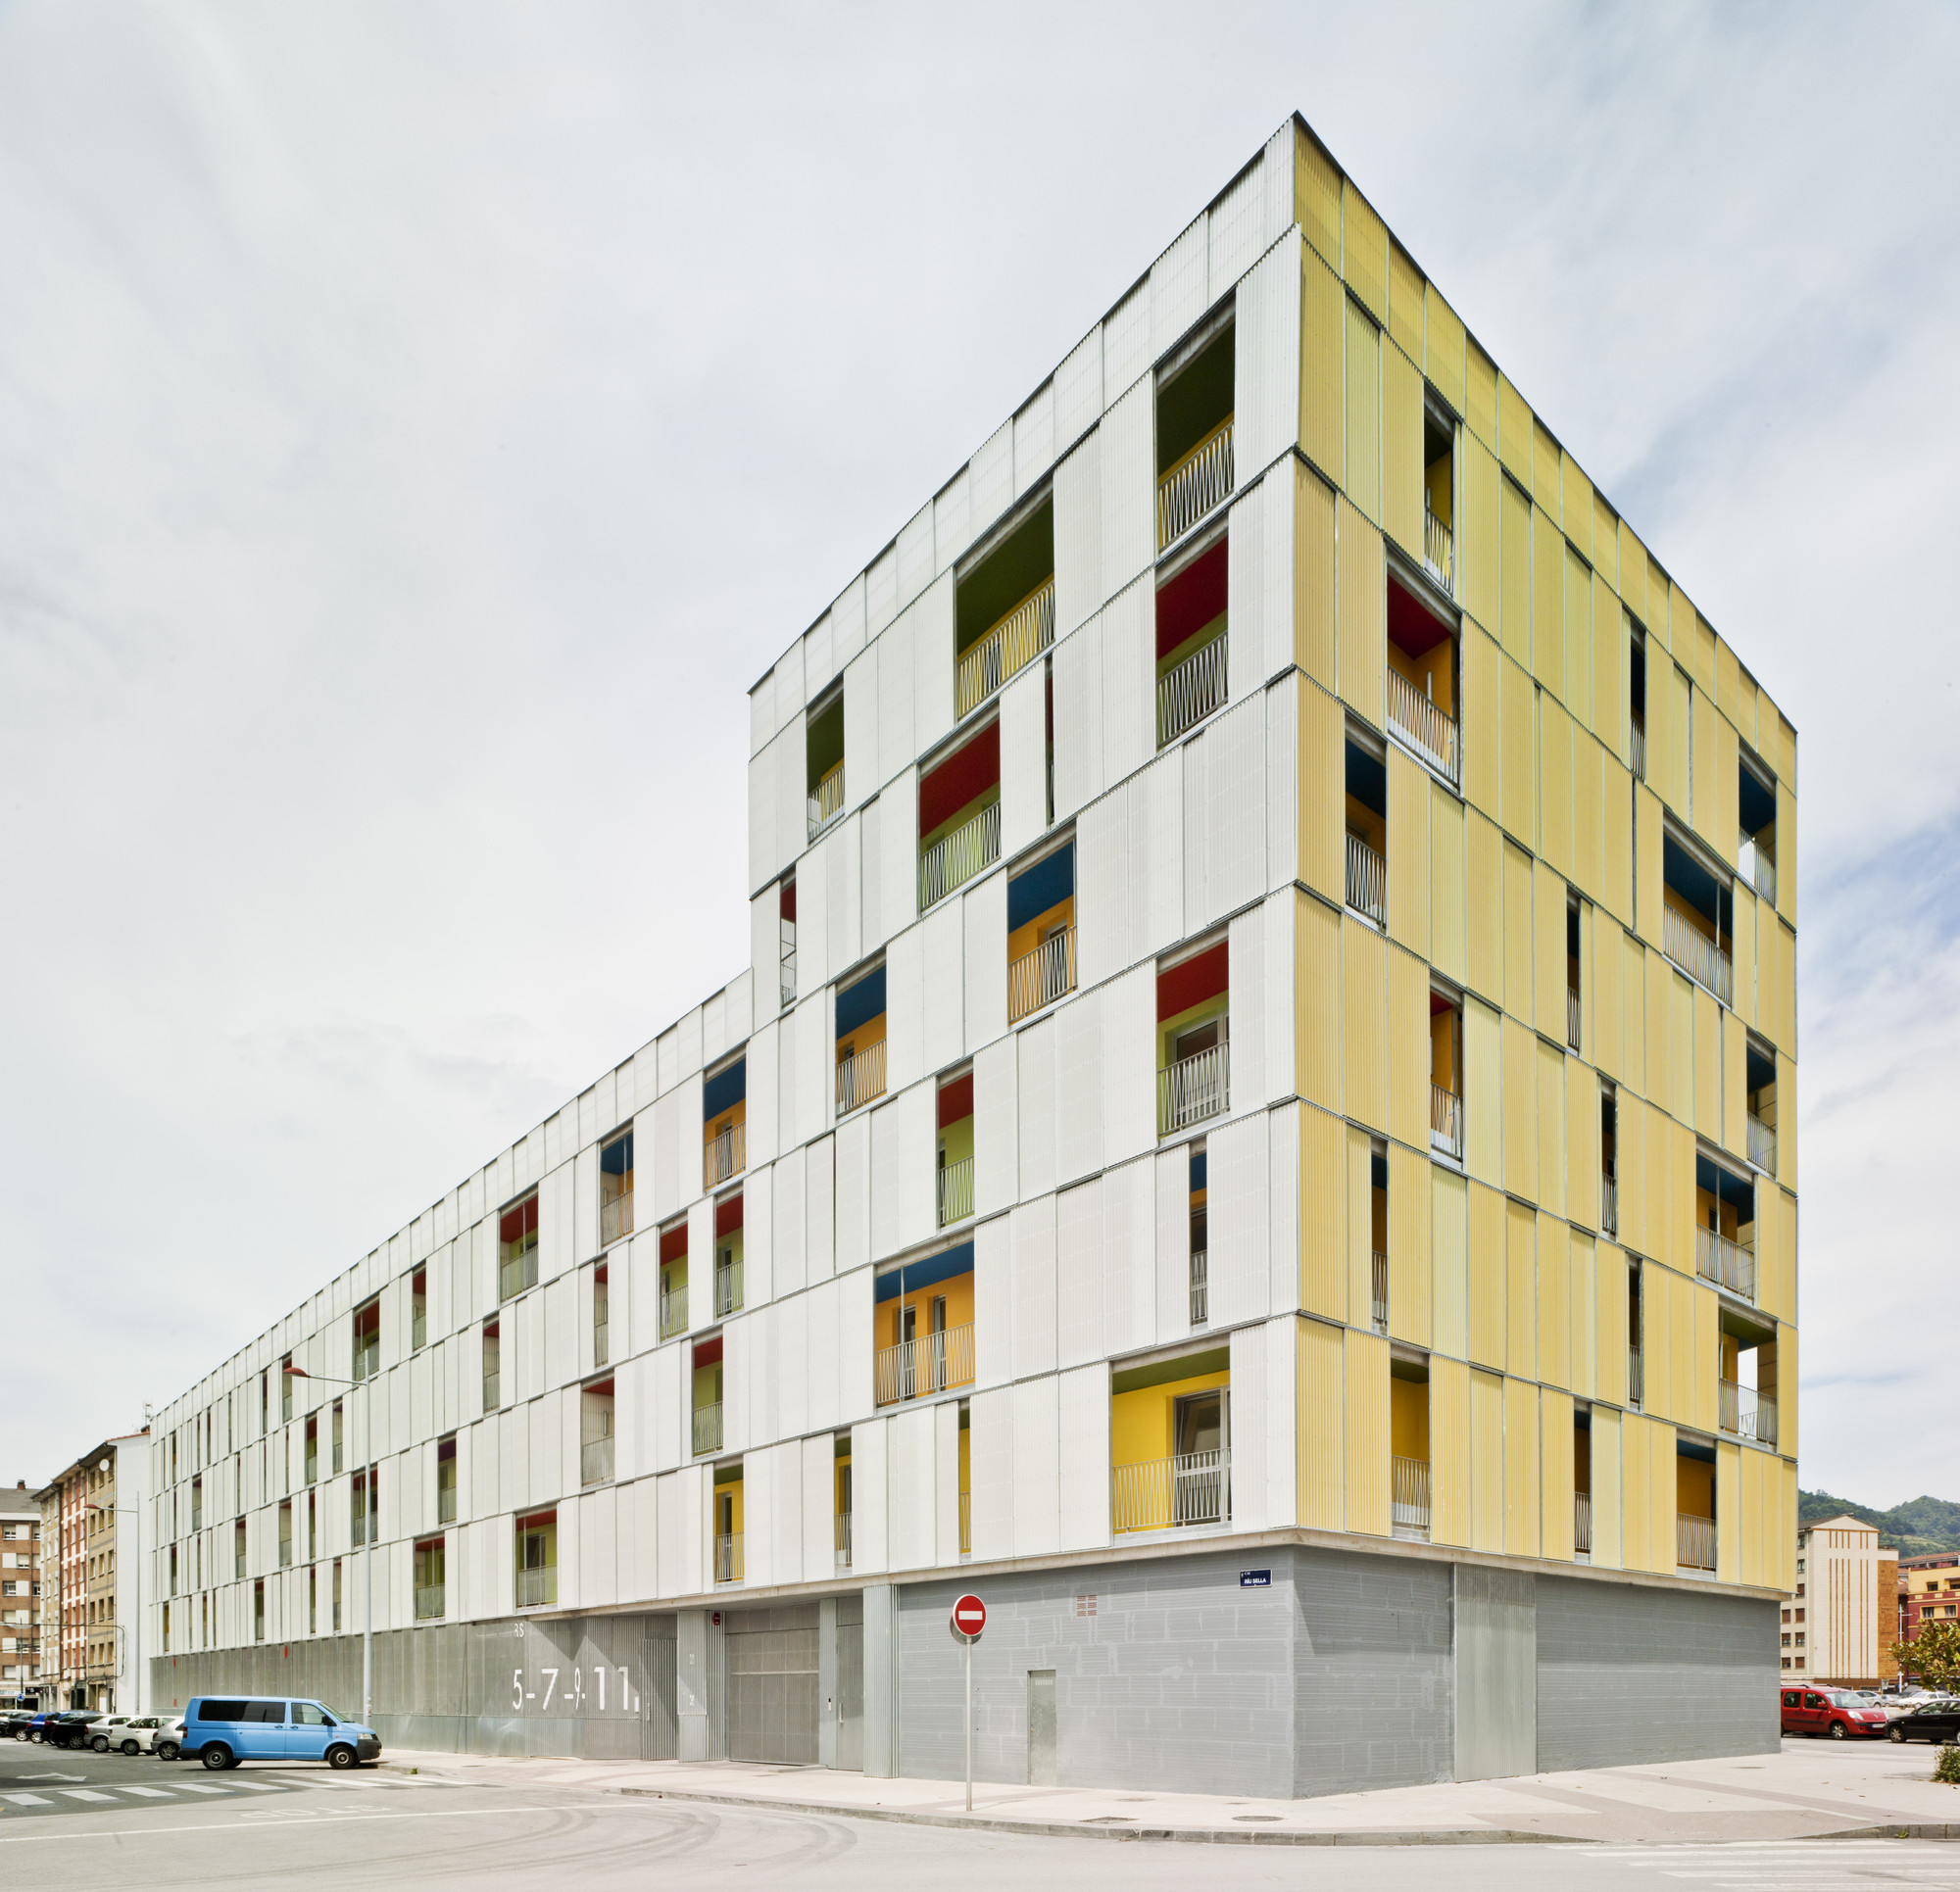 Gallery of 151 homes shops and garage in mieres amann for Facade immeuble contemporain